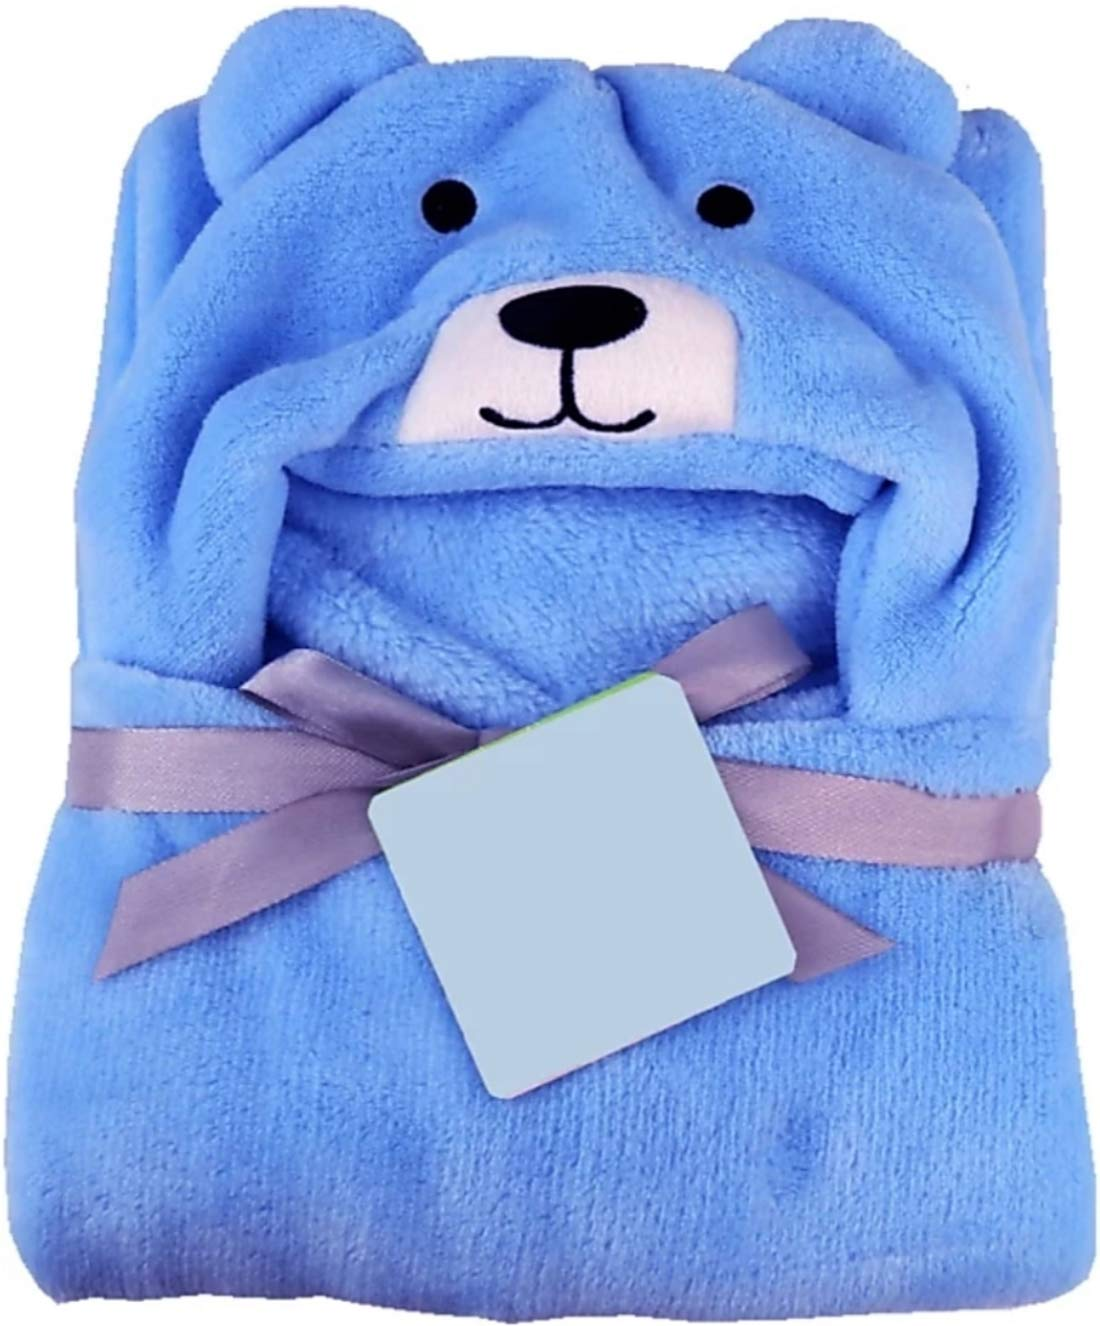 Brandonn All in 1 Ultrasoft Luxury Hooded Funny Caps Wrapper/Baby Bath Towel/Baby Blanket